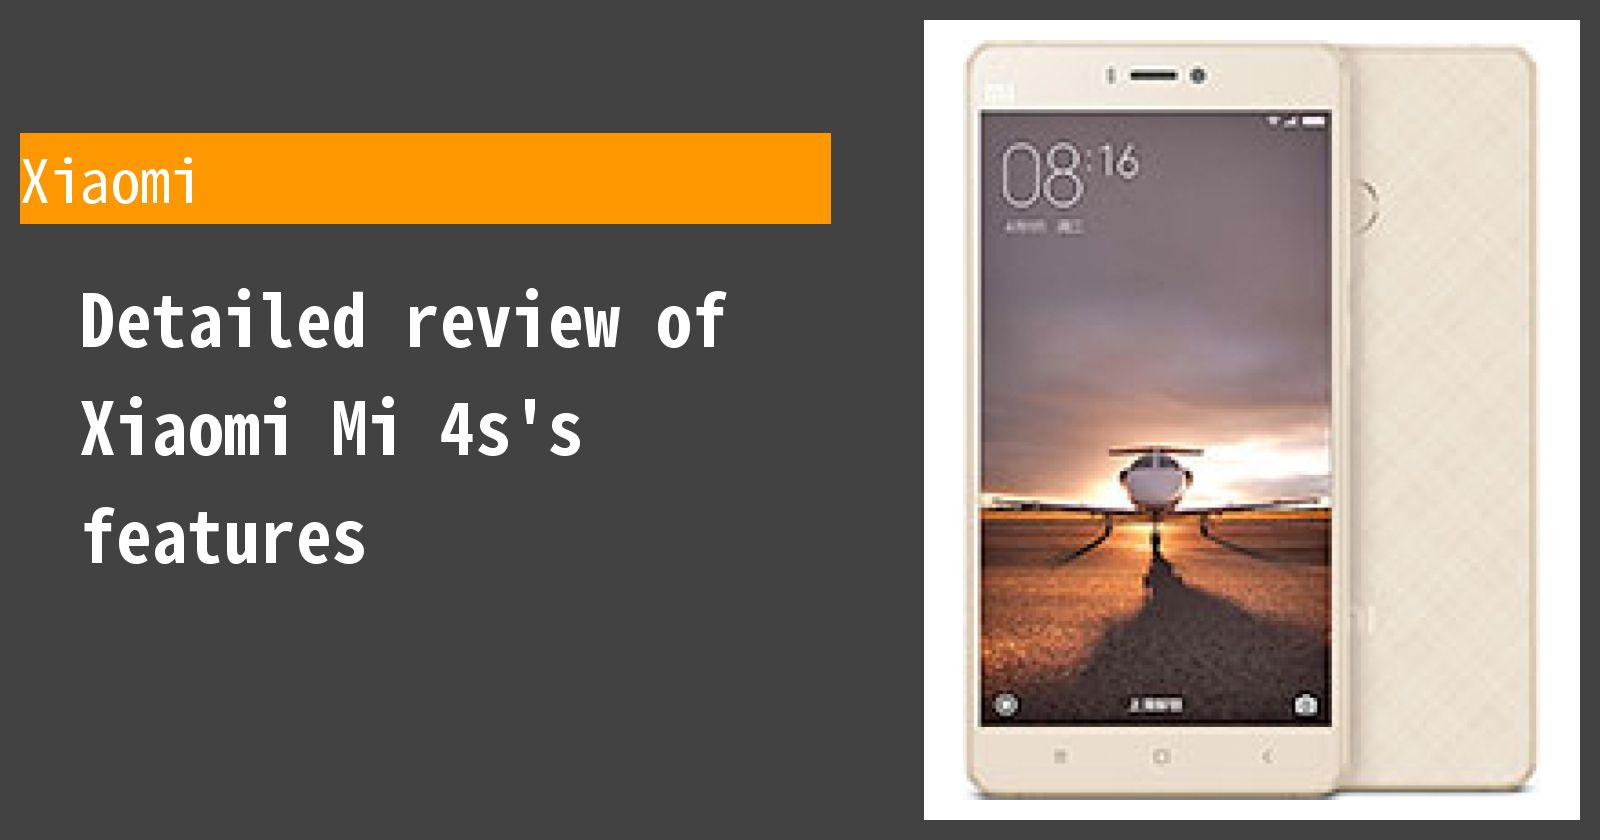 Detailed review of Xiaomi Mi 4s's features